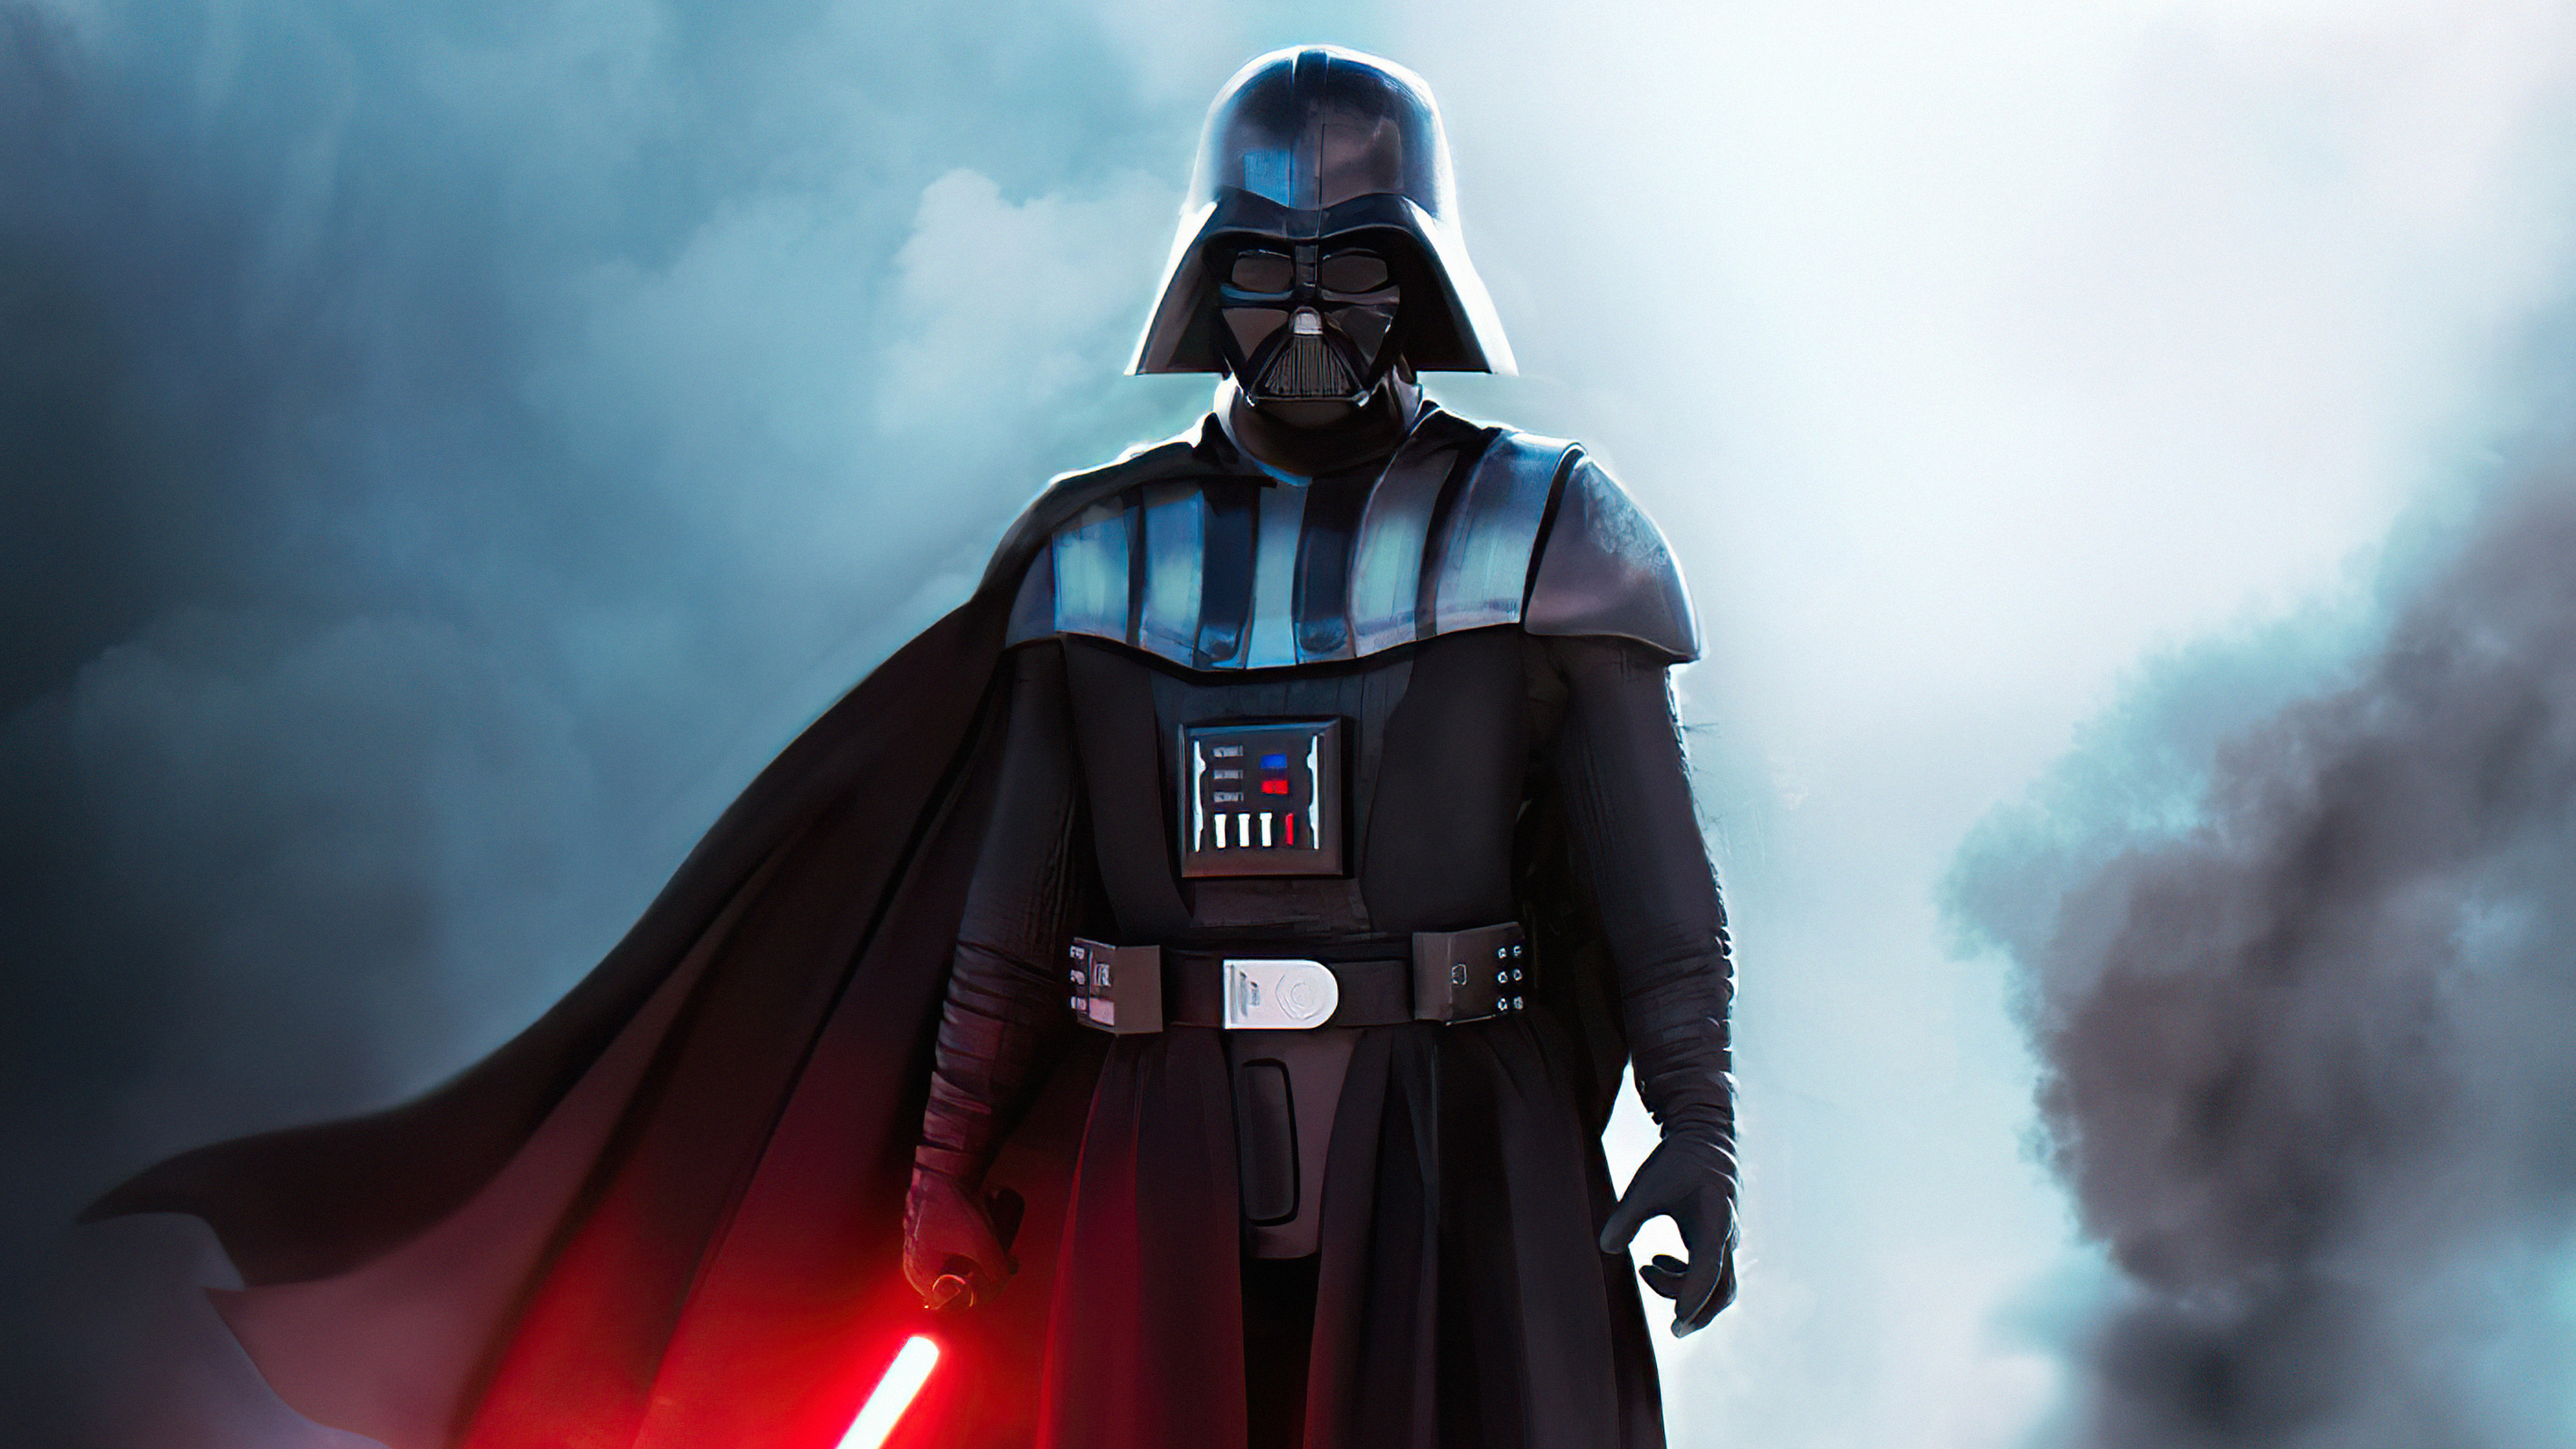 Darth Vader Sith Star Wars Wallpaper Hd Superheroes 4k Wallpapers Images Photos And Background Wallpapers Den